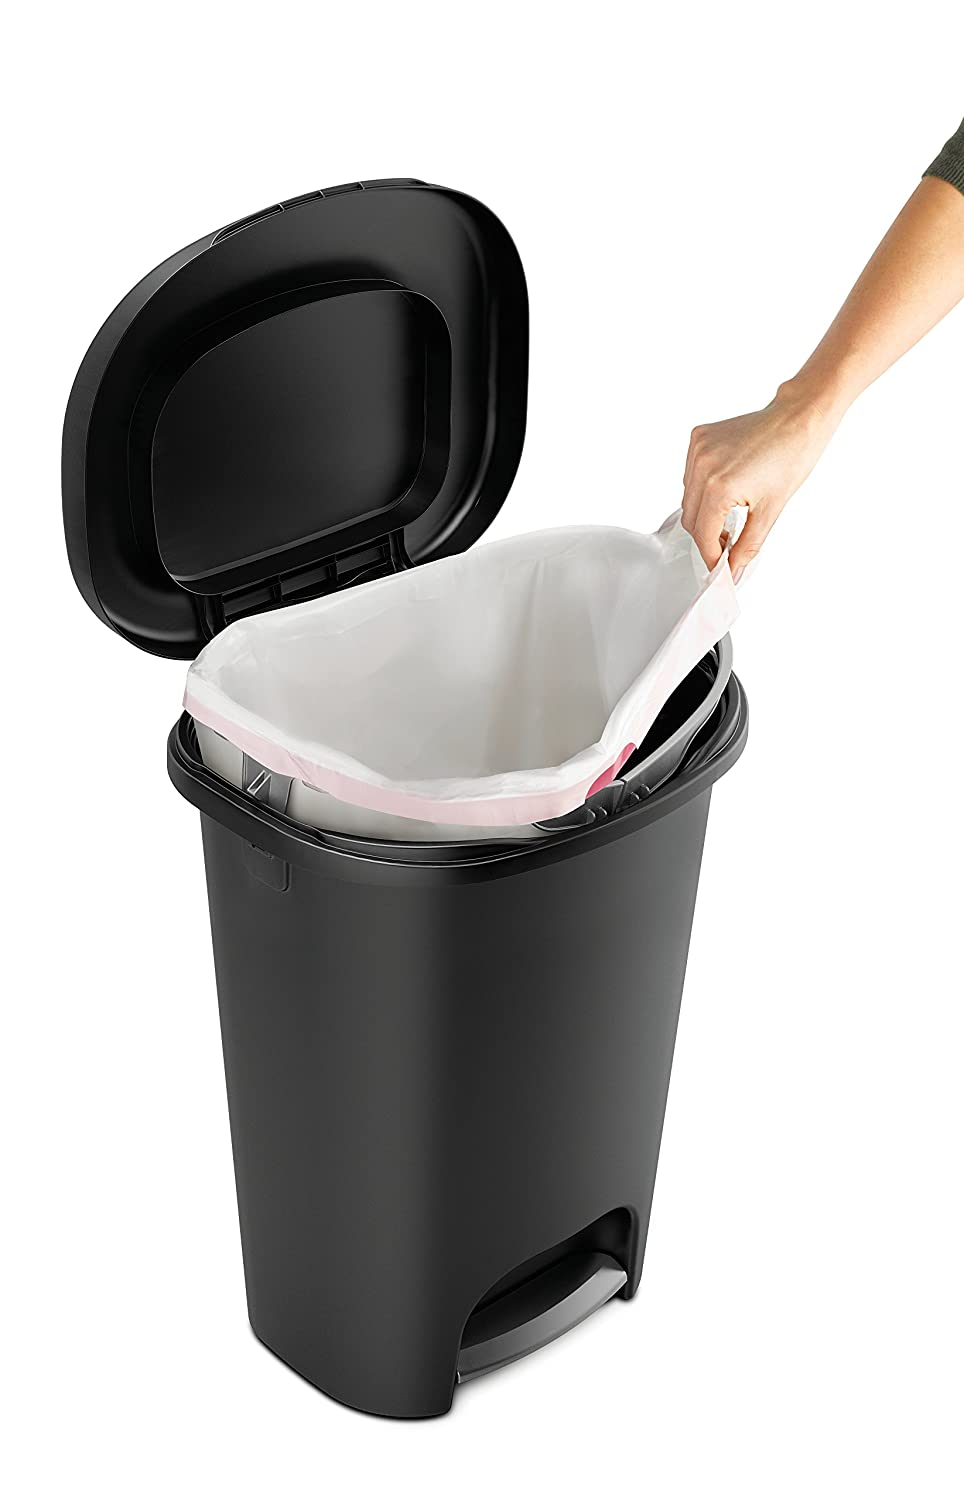 Superbe Amazon.com: Rubbermaid Step On Wastebasket, 13 Gallon   Black: Home U0026  Kitchen